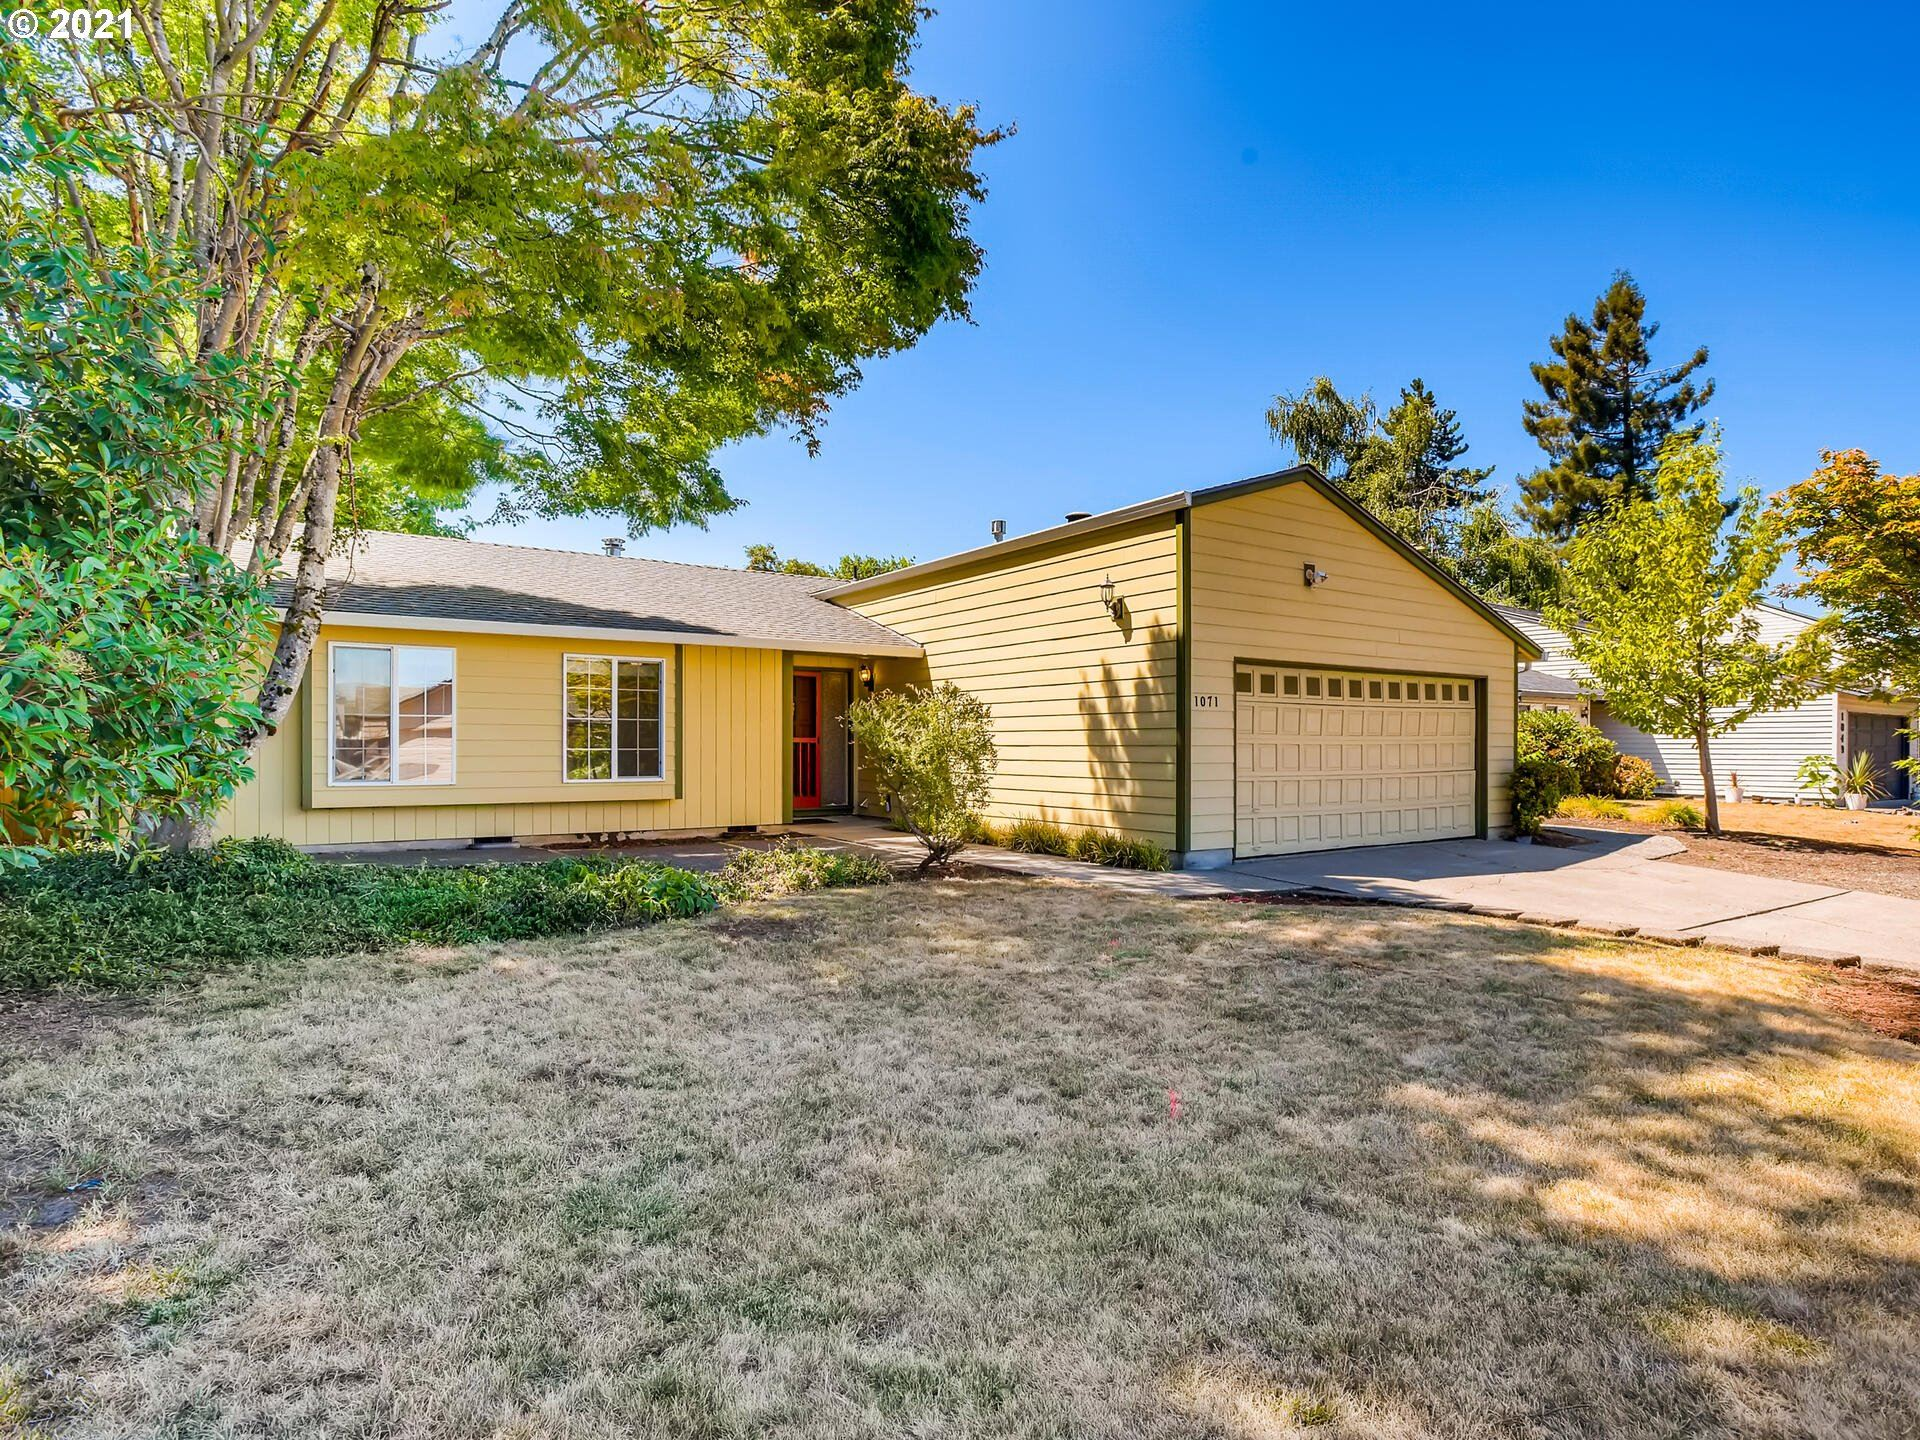 1071 S IVY CT, Canby, OR 97013 - MLS#: 21514495